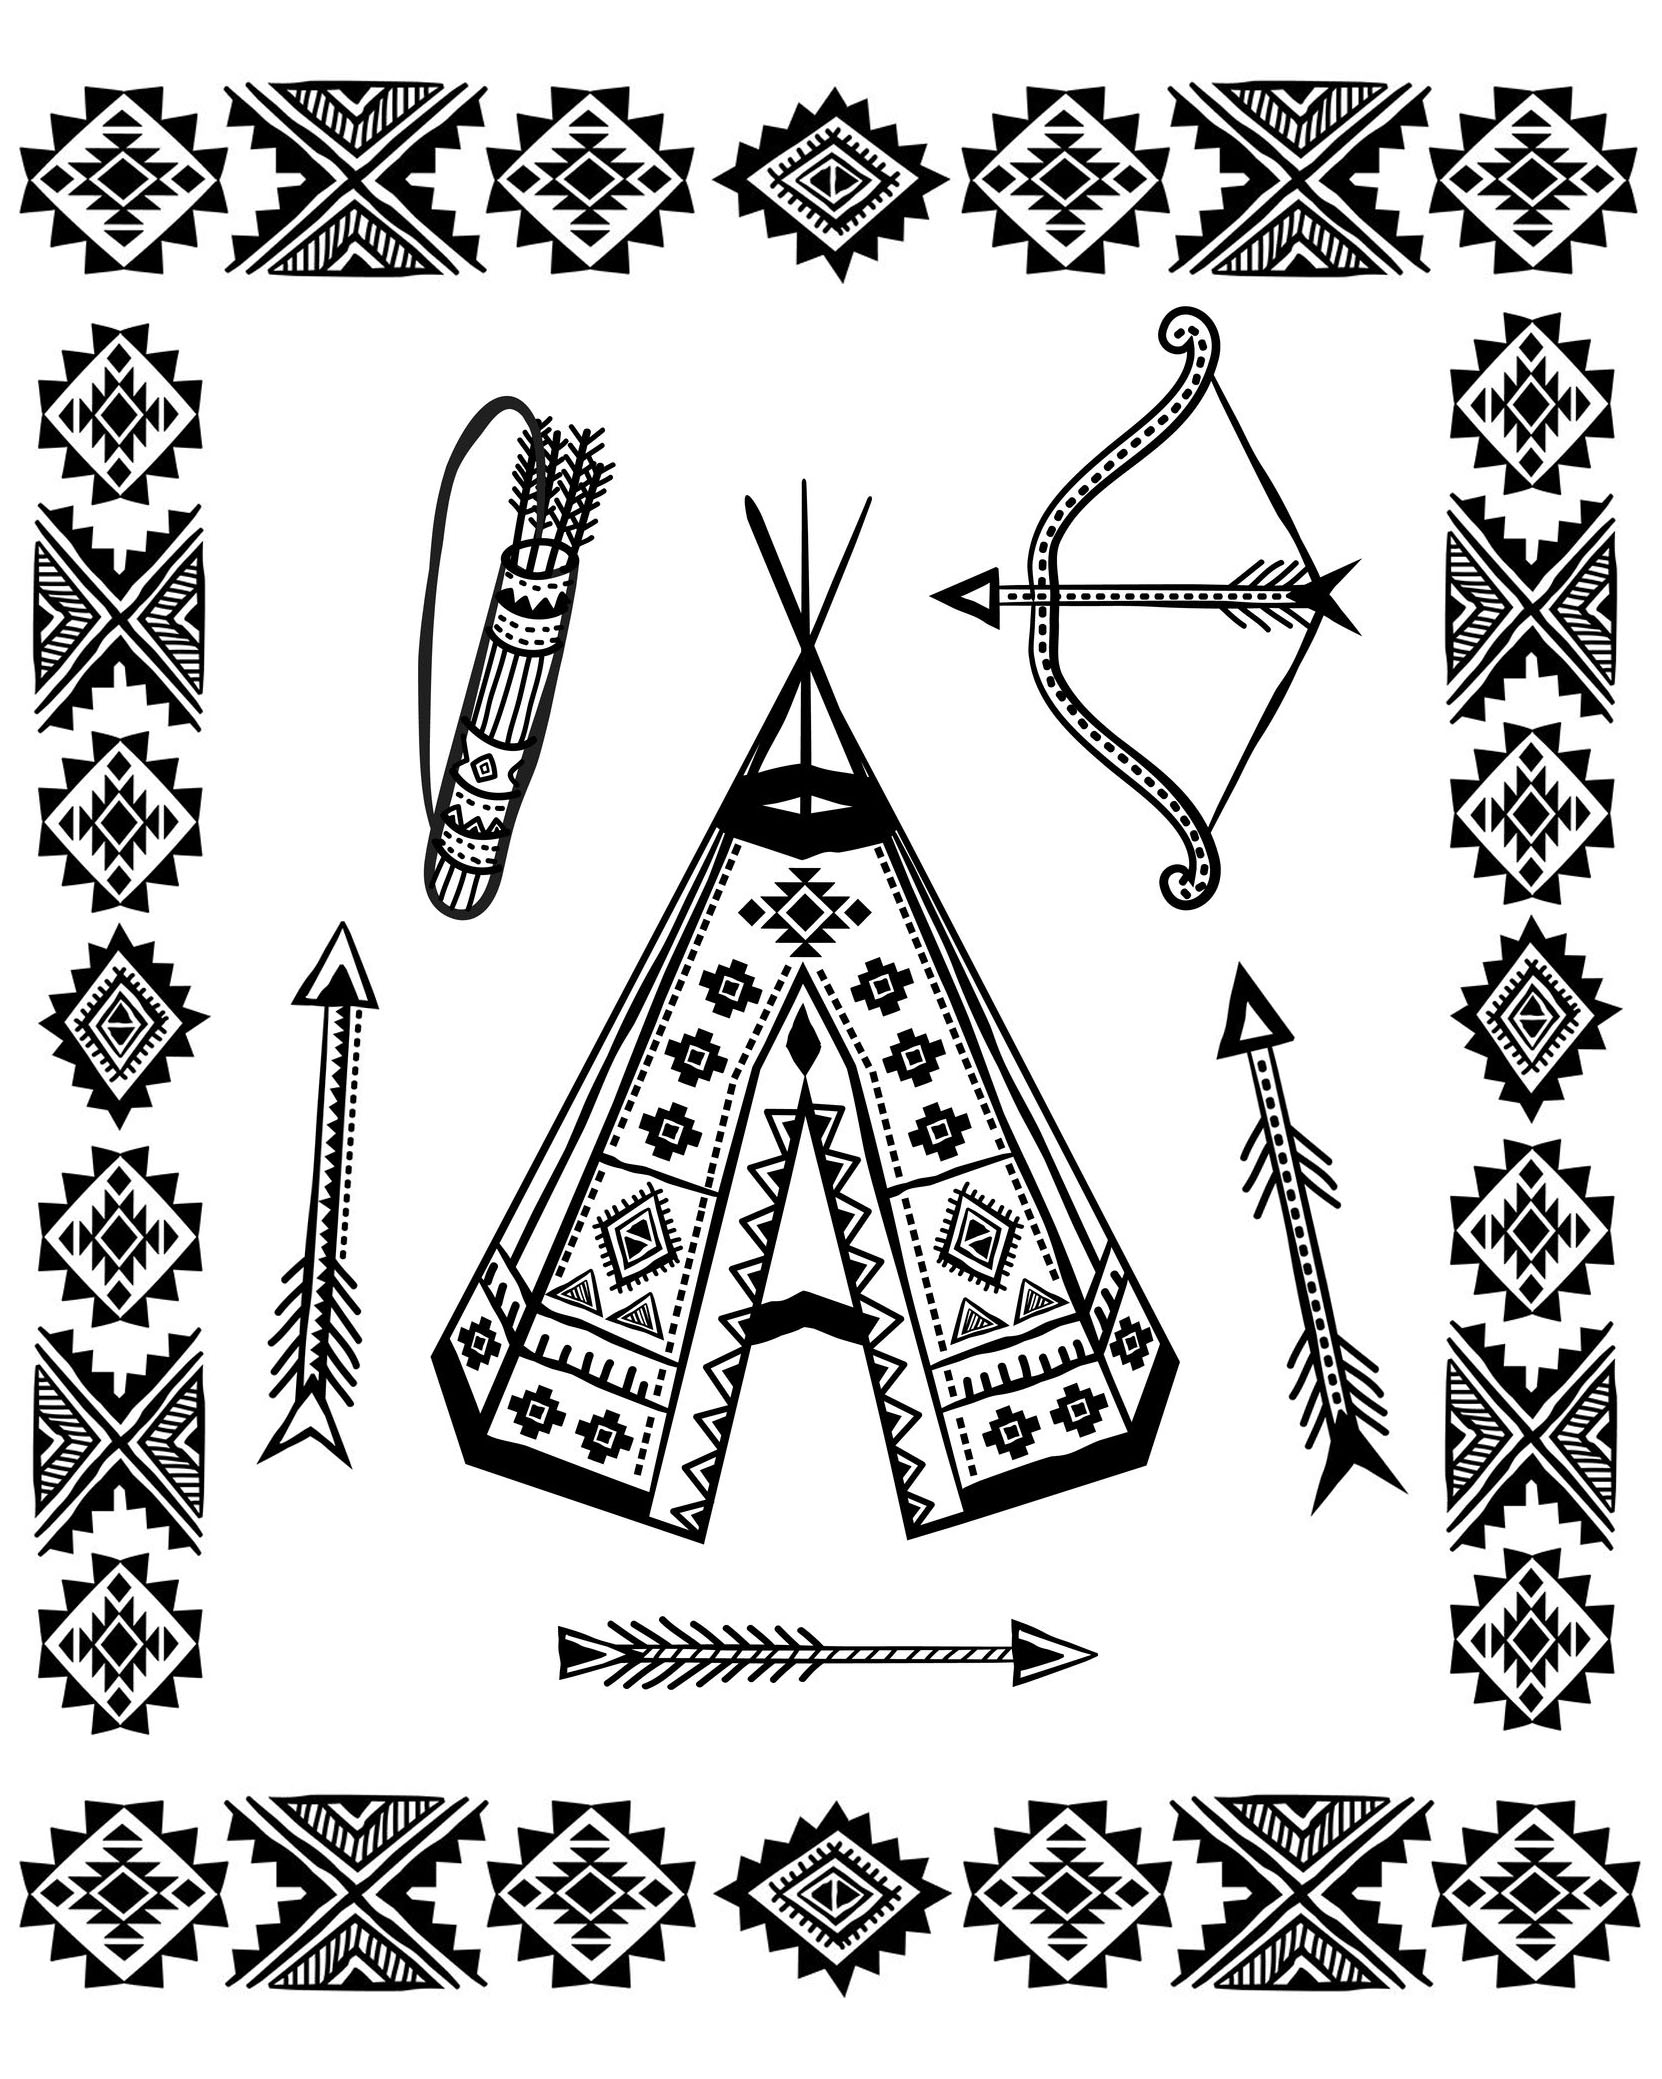 Coloring page with a Tipi and other symbols